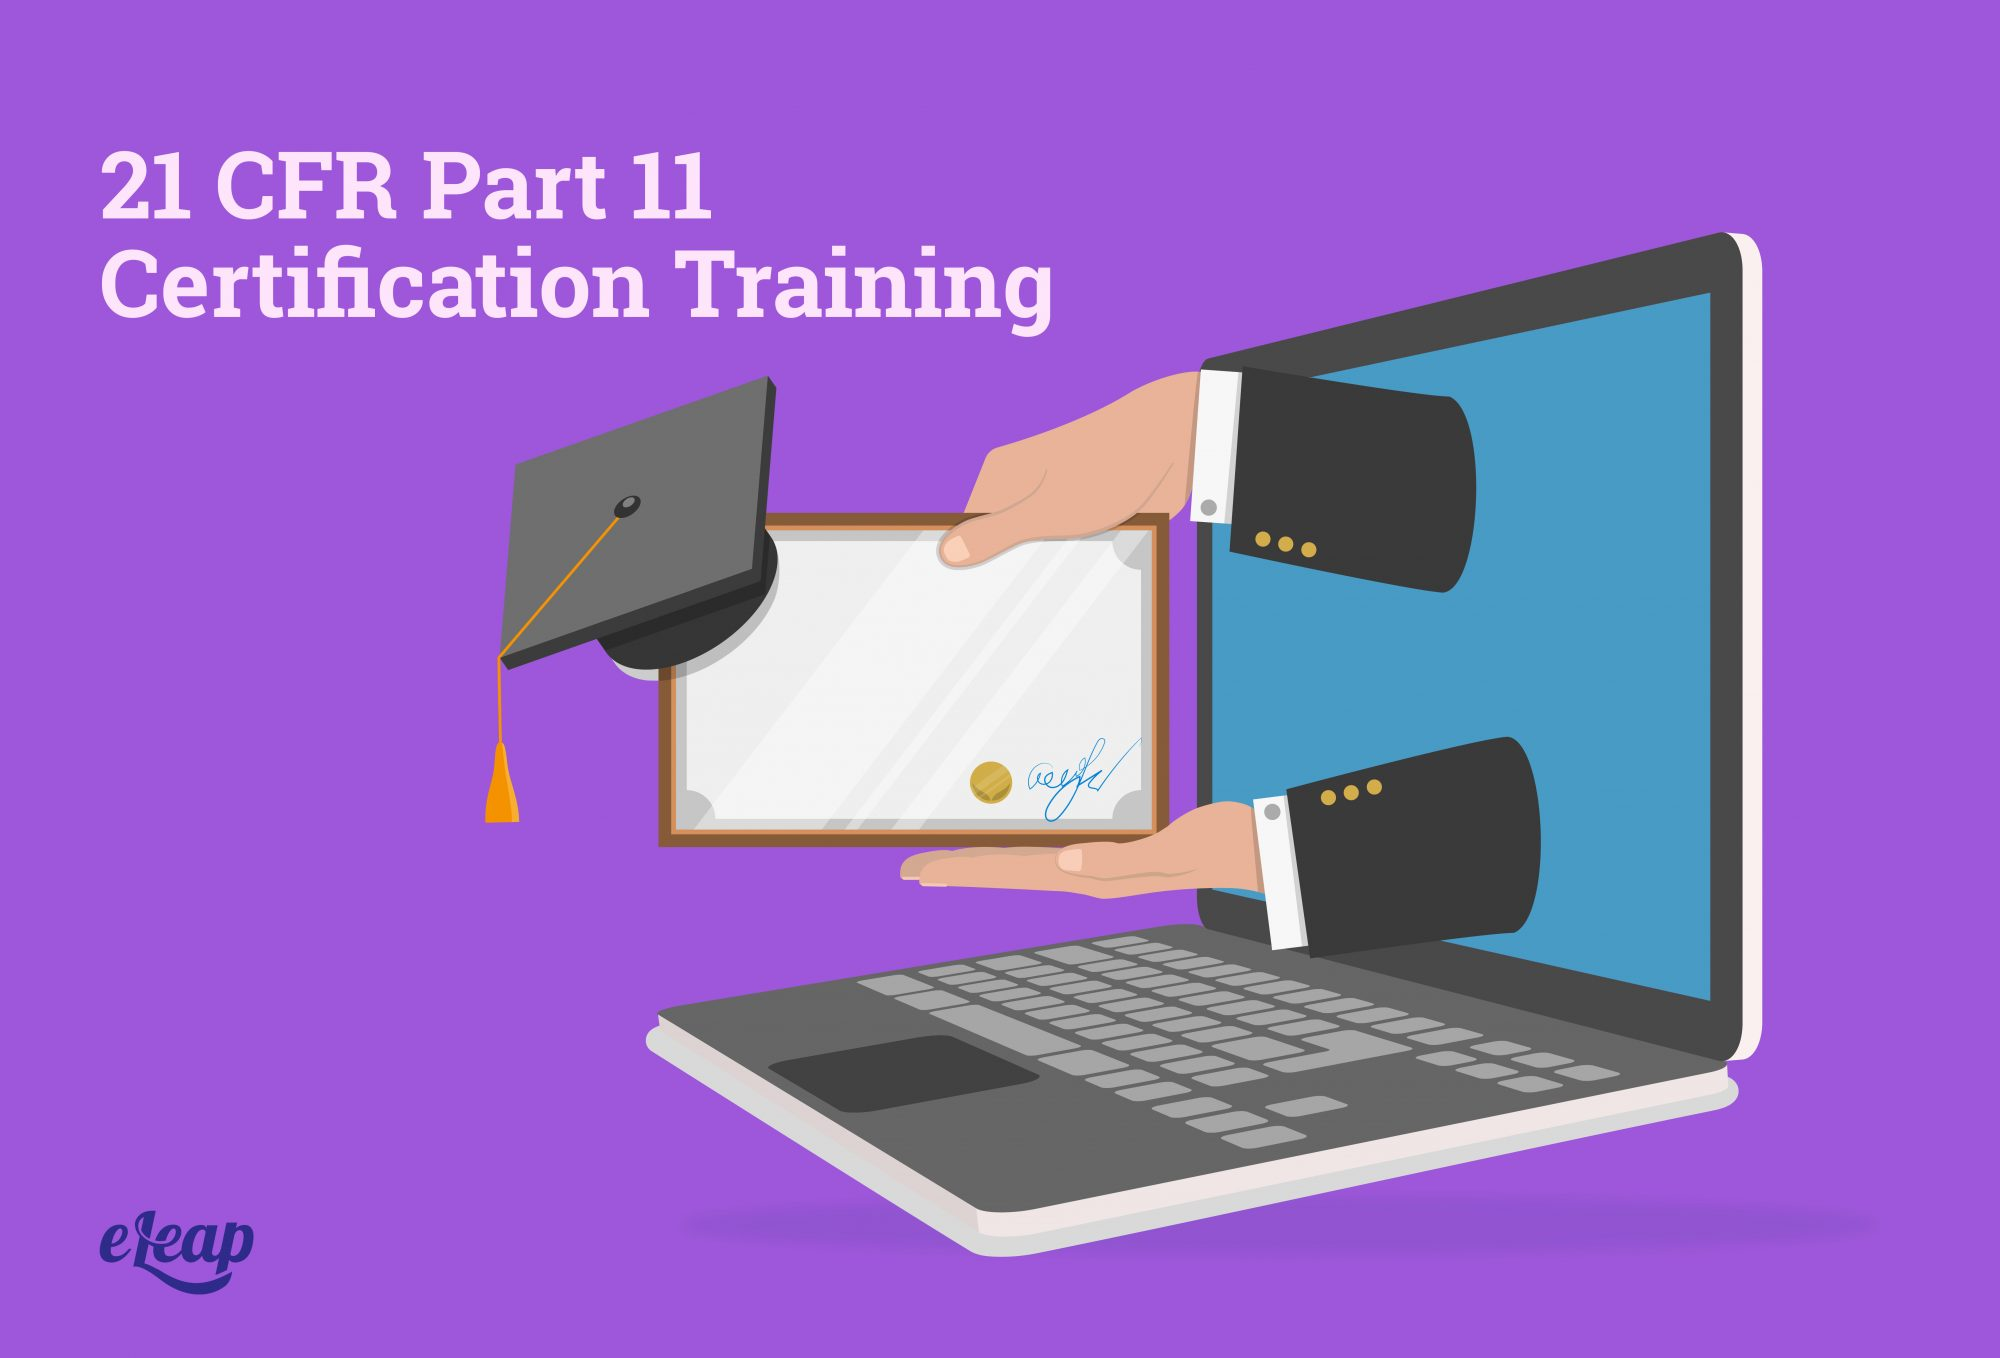 21 CFR Part 11 Certification Training